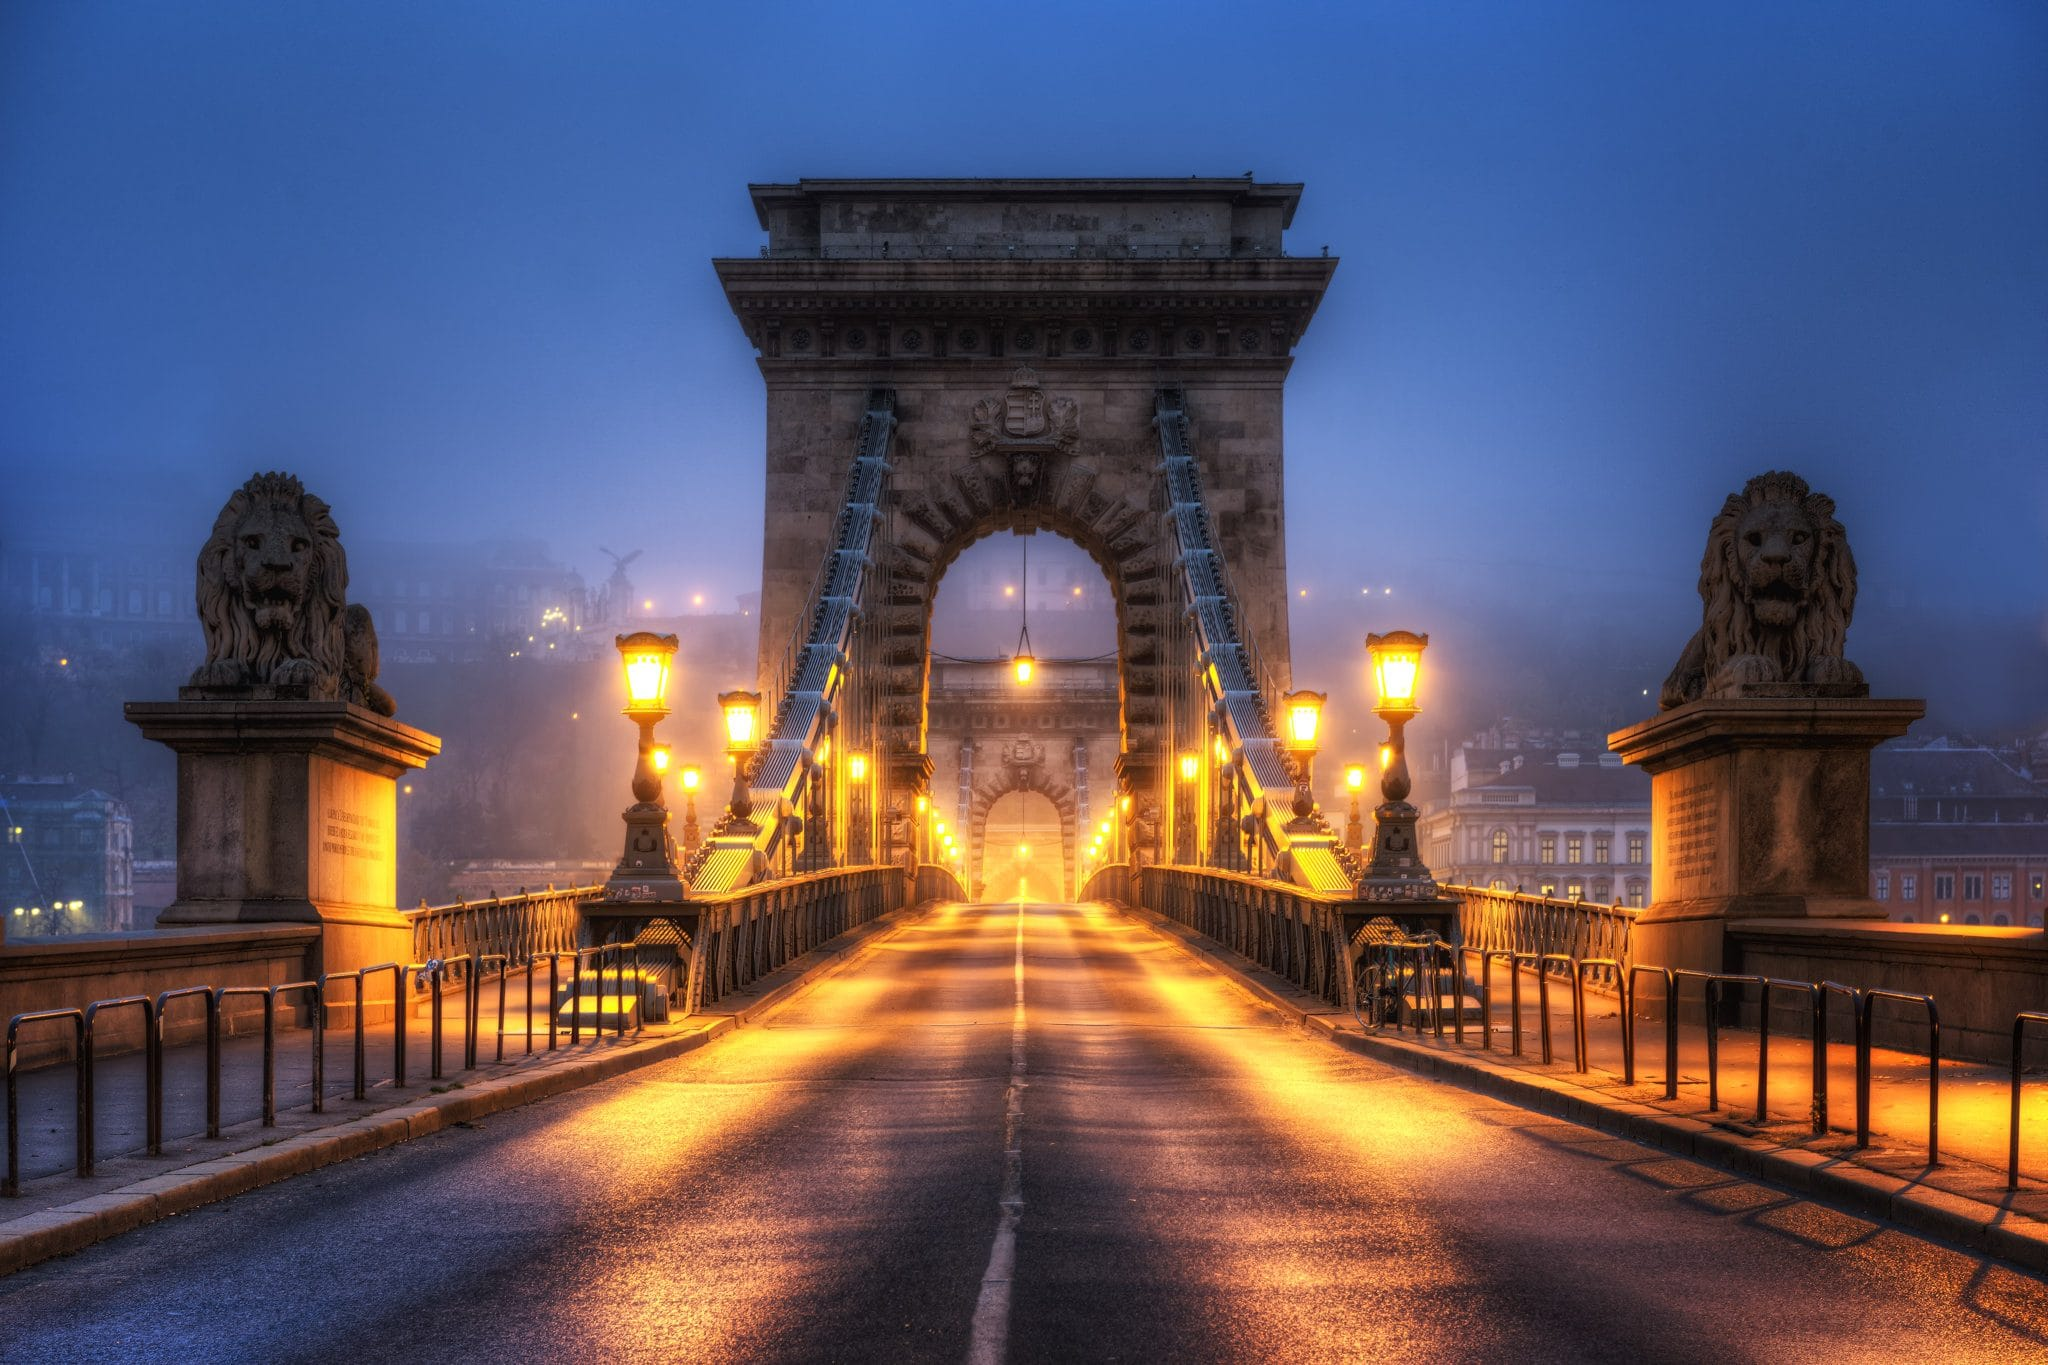 Széchenyi Chain Bridge in Budapest, Hungary at Night with fog over the Danube River